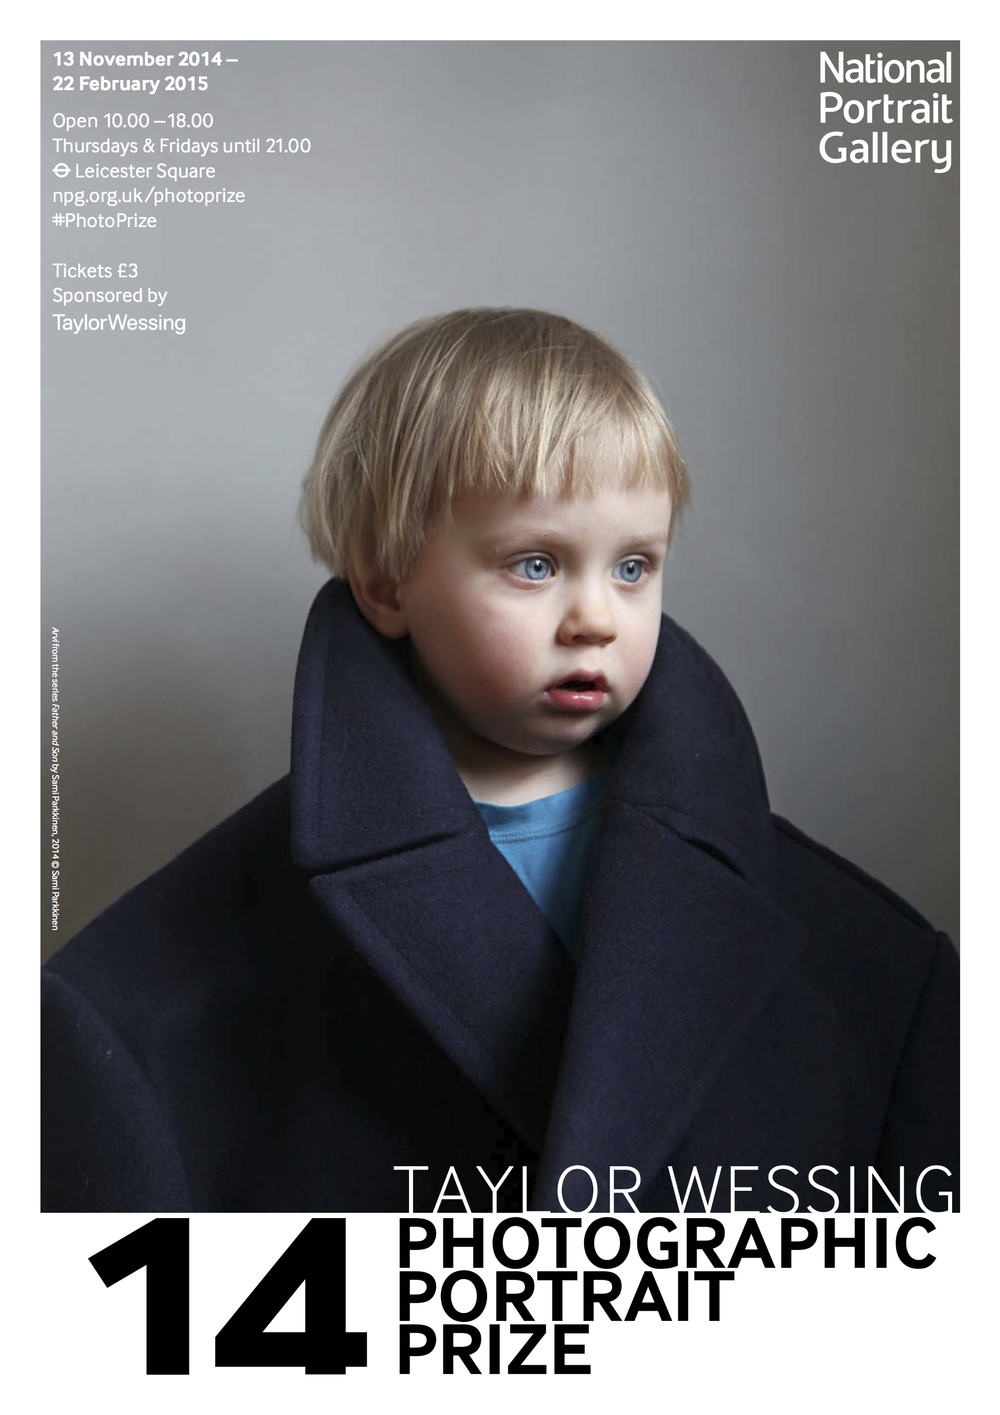 Sami Parkkinen's photograph of his son   Arvi,   2014 is now all over the streets of London. The picture was the only Finnish image chosen for Taylor Wessing photographic portrait award exhibition at National Portrait Gallery in London. All together the competition got over 4000 submissions. Parkkinen's photograph was chosen to feature in the posters for the exhibition and on the cover of the exhibition catalogue.         National Portrait Gallery, London    Order cataloque here    Finnish Art Agency